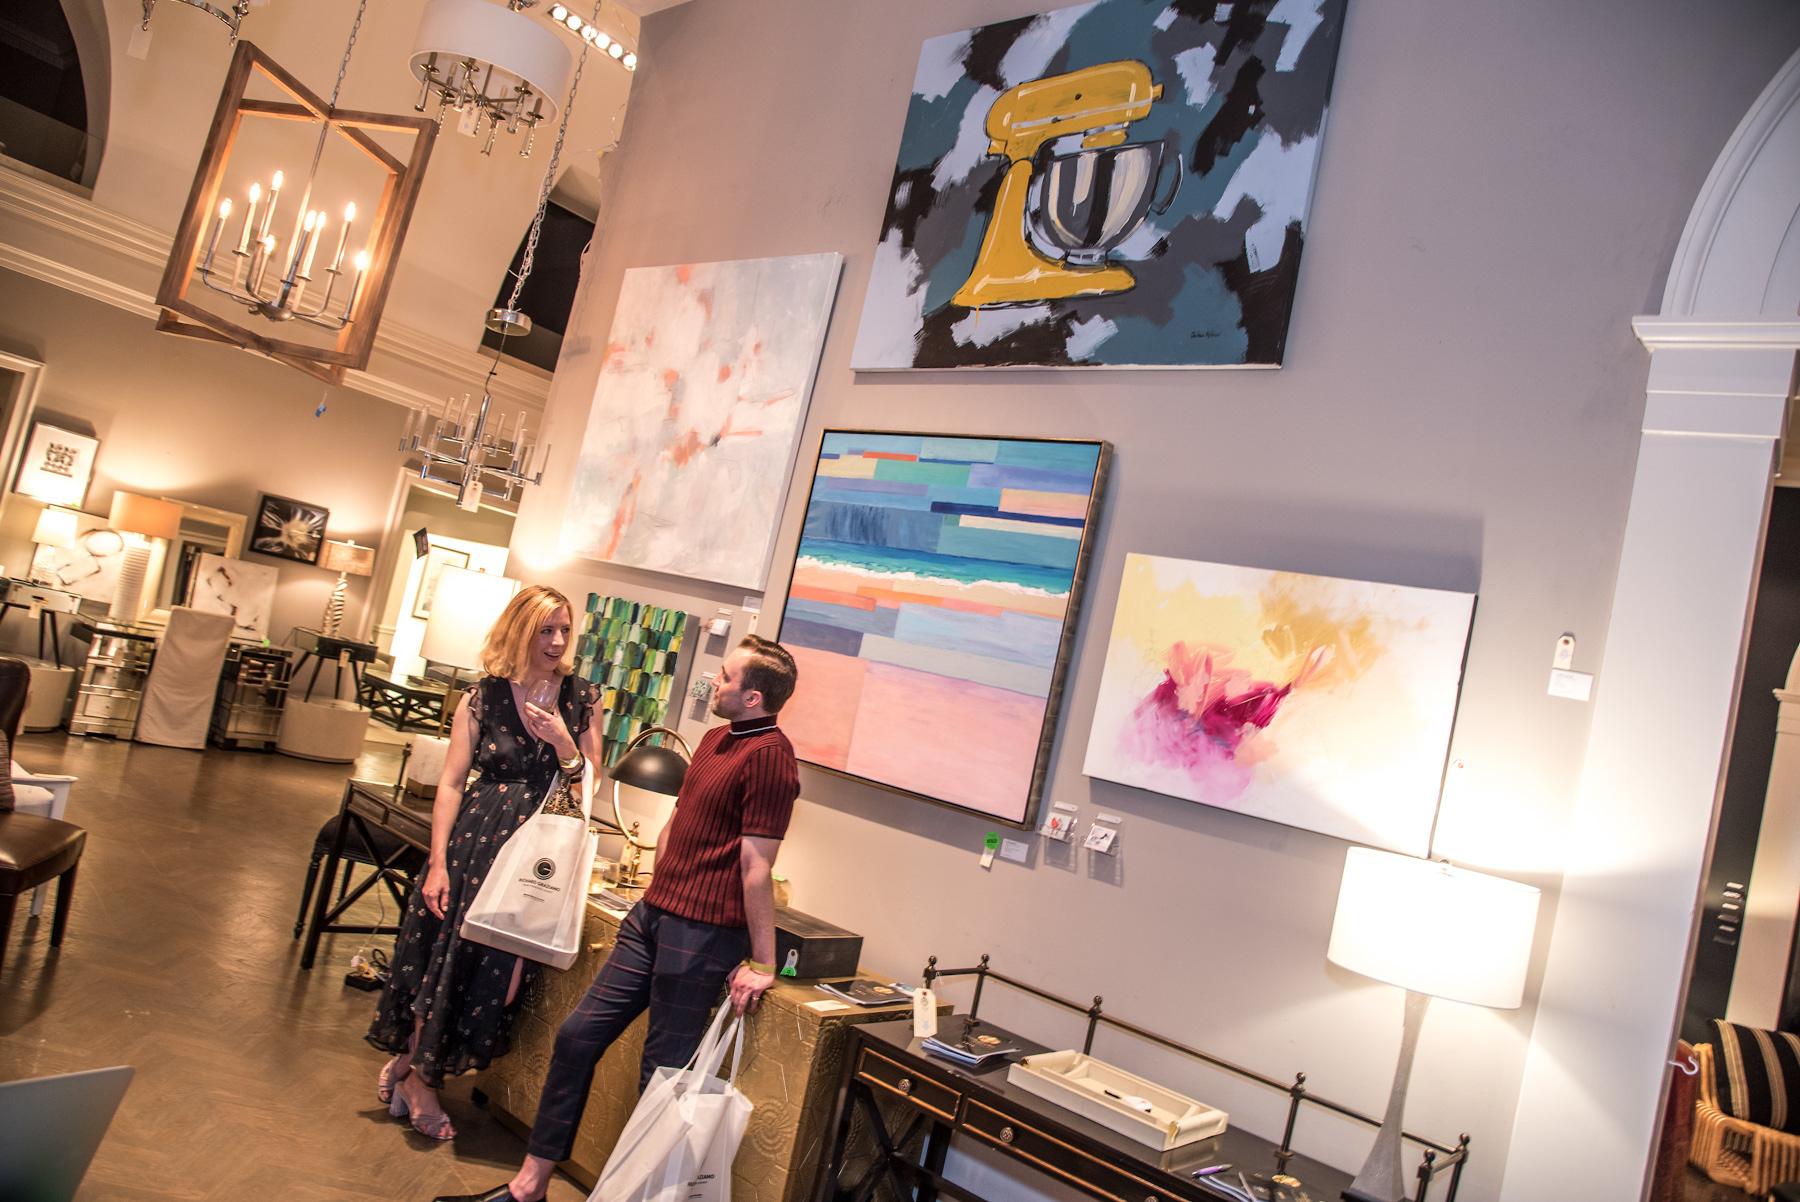 Dwell with Dignity's Thrift Studio is an annual 2-3 week pop-up shop fundraiser that features designer-curated vignettes filled with overstock of donated new and gently used furniture, housewares, accessories and high end designer finds.  PHOTO: Bret Redman